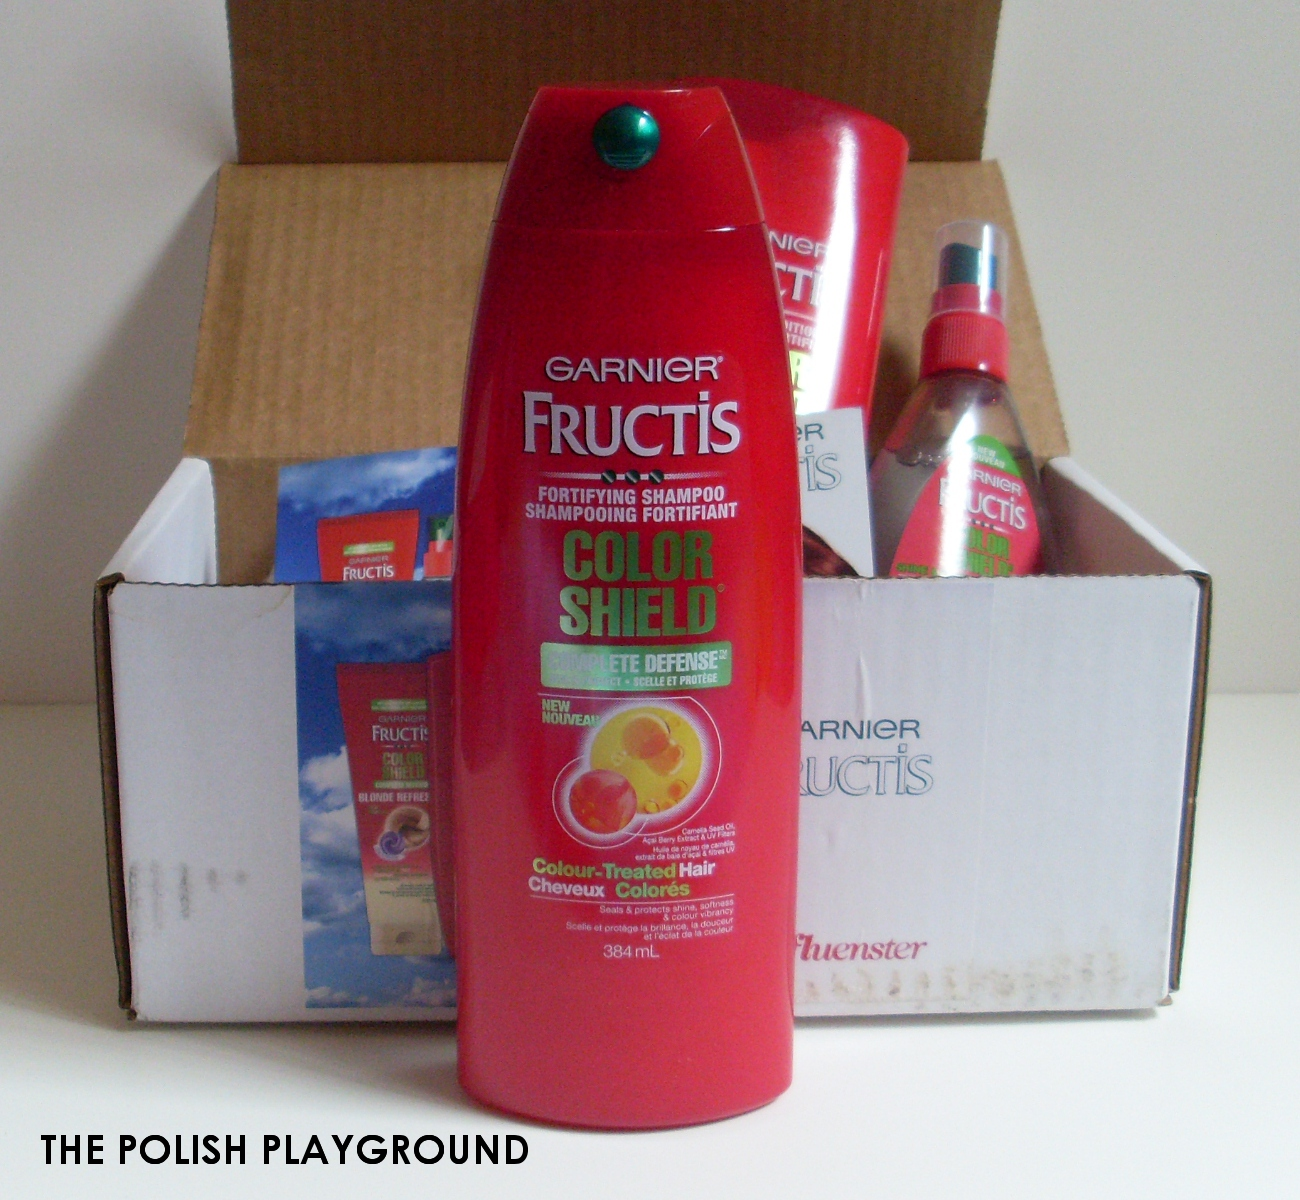 Influenster Garnier Fructis Color Shield Unboxing + First Impressions #ColorShield - Garnier Fructis Color Shield Fortifying Shampoo